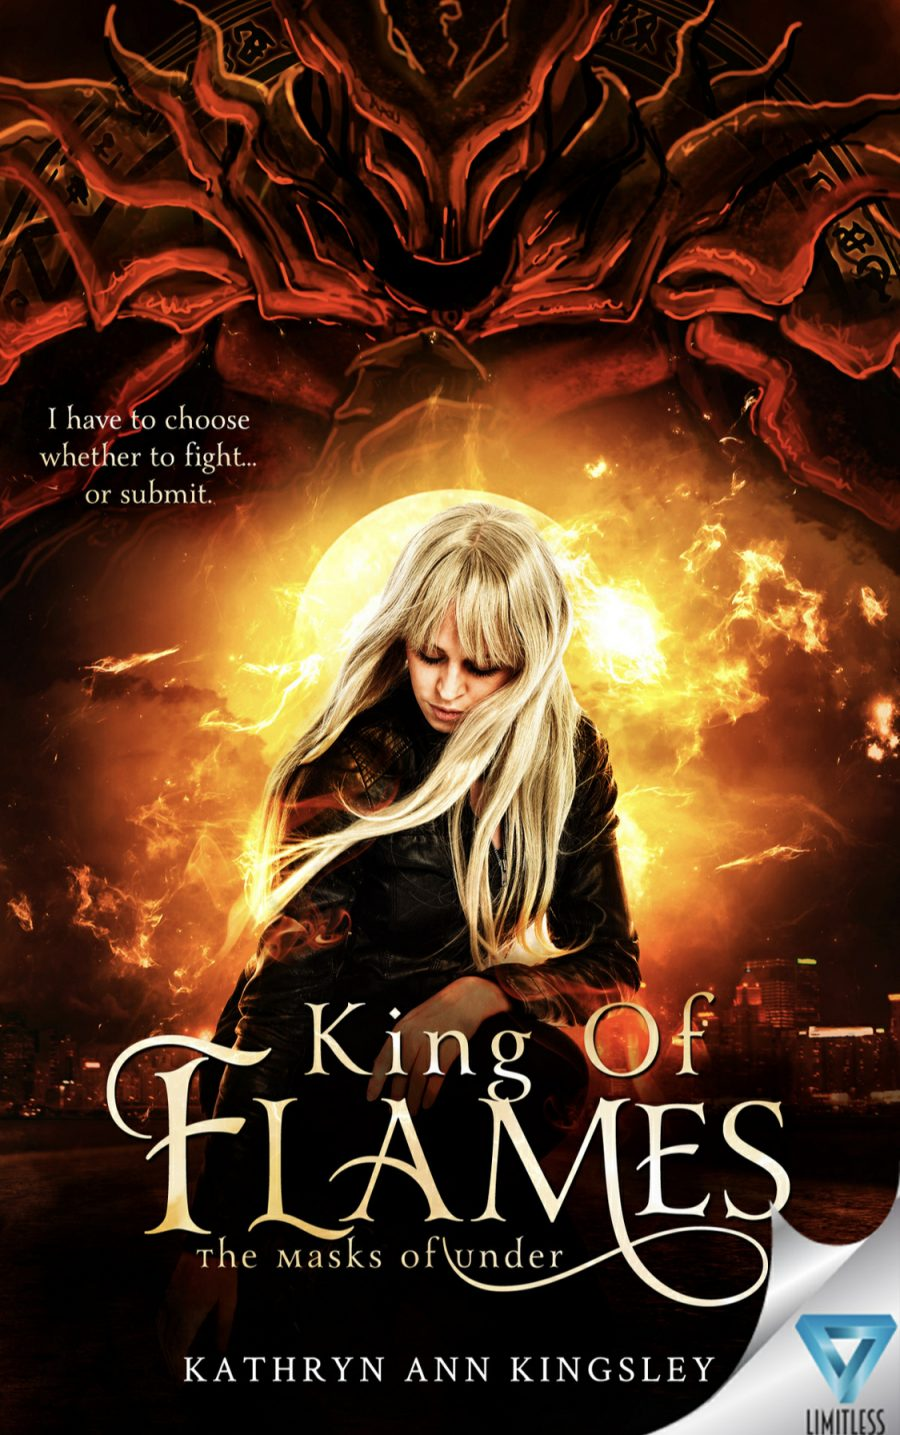 King of Flames by Kathryn Ann Kingsley - A Book Review #BookReview #Review #UrbanFantasy #UF #Cliffhanger #Realms #Fantastic #WouldRecommend